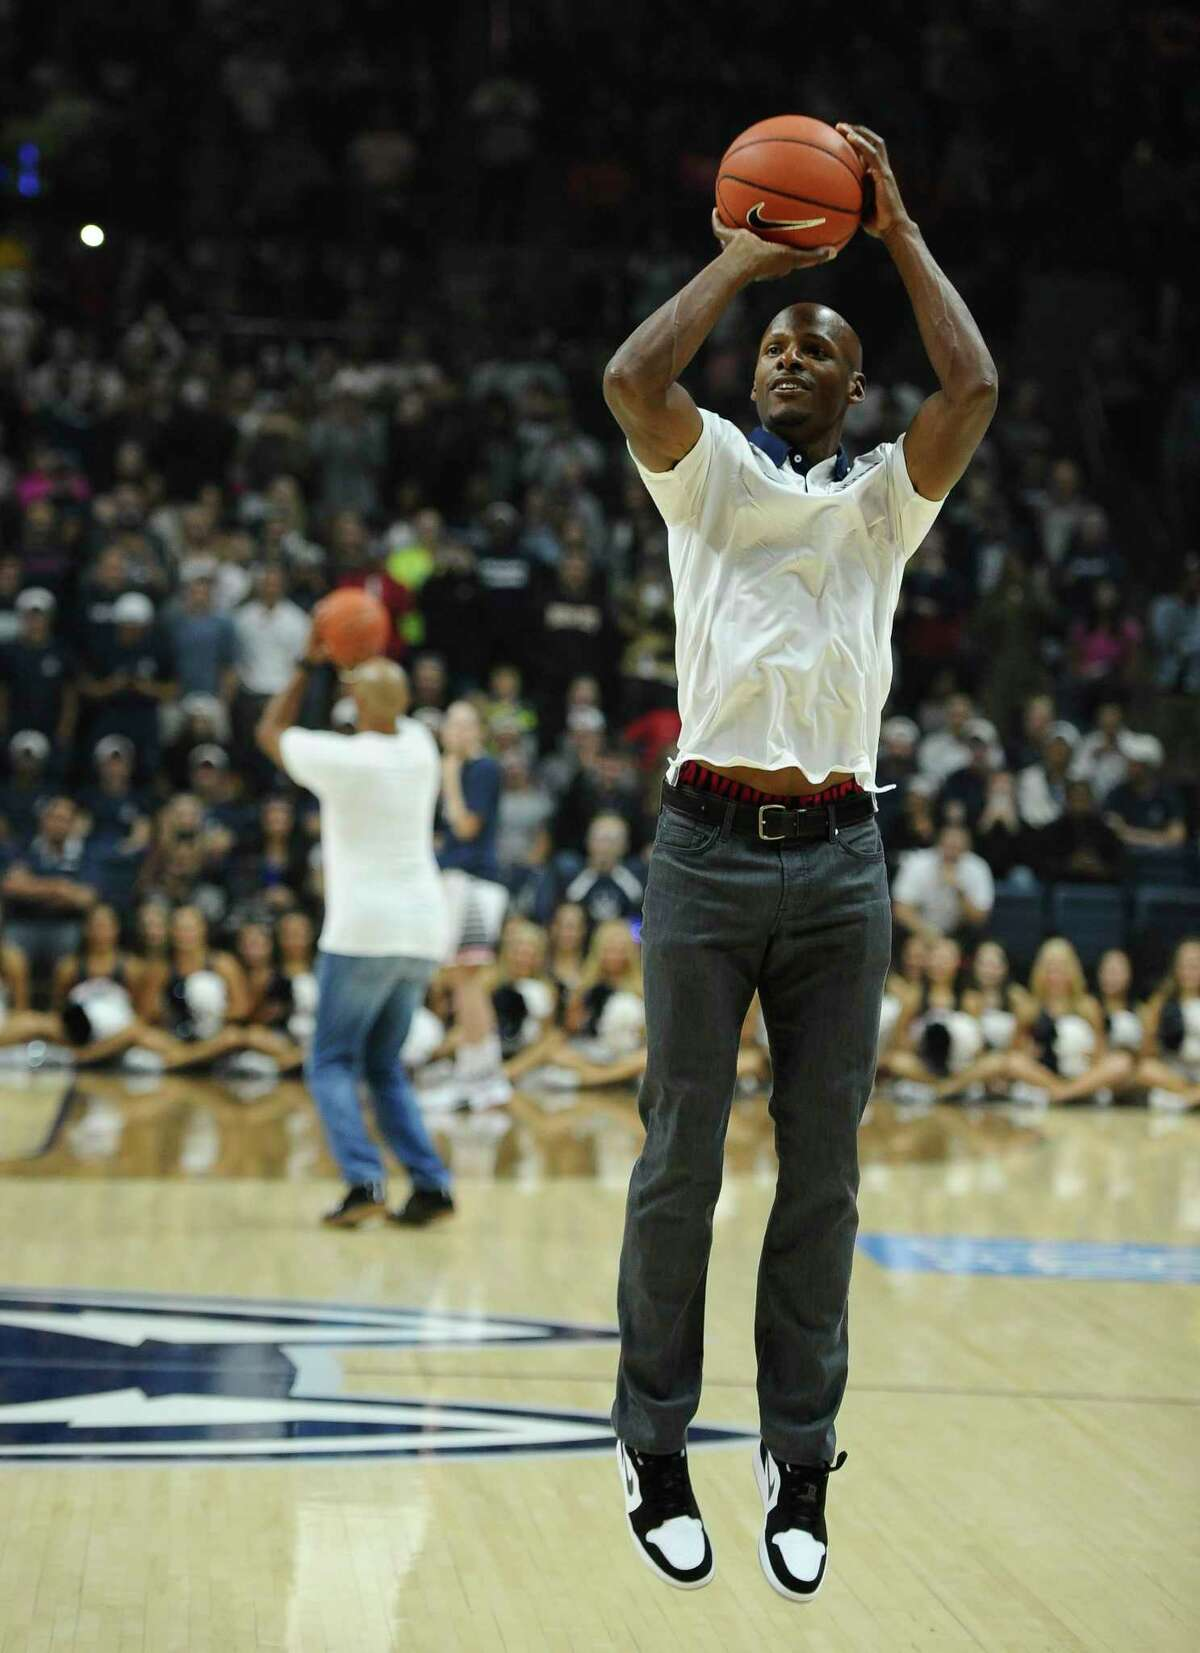 UConn legend Ray Allen competes in a 3-point competition against former Husky great Donny Marshall, background, at First Night on Friday in Storrs.